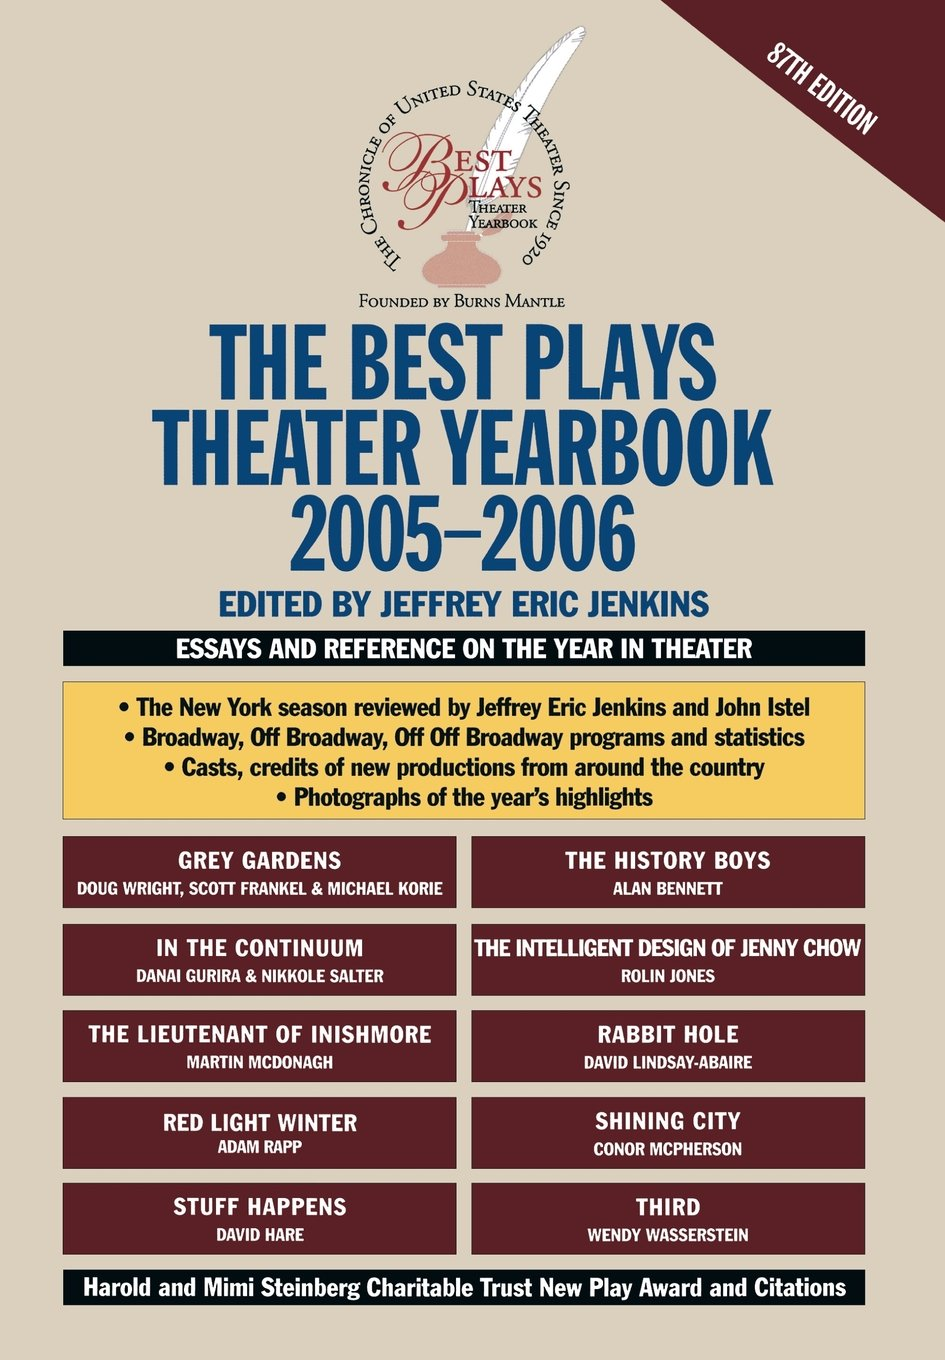 The Best Plays Theater Yearbook 2005-2006